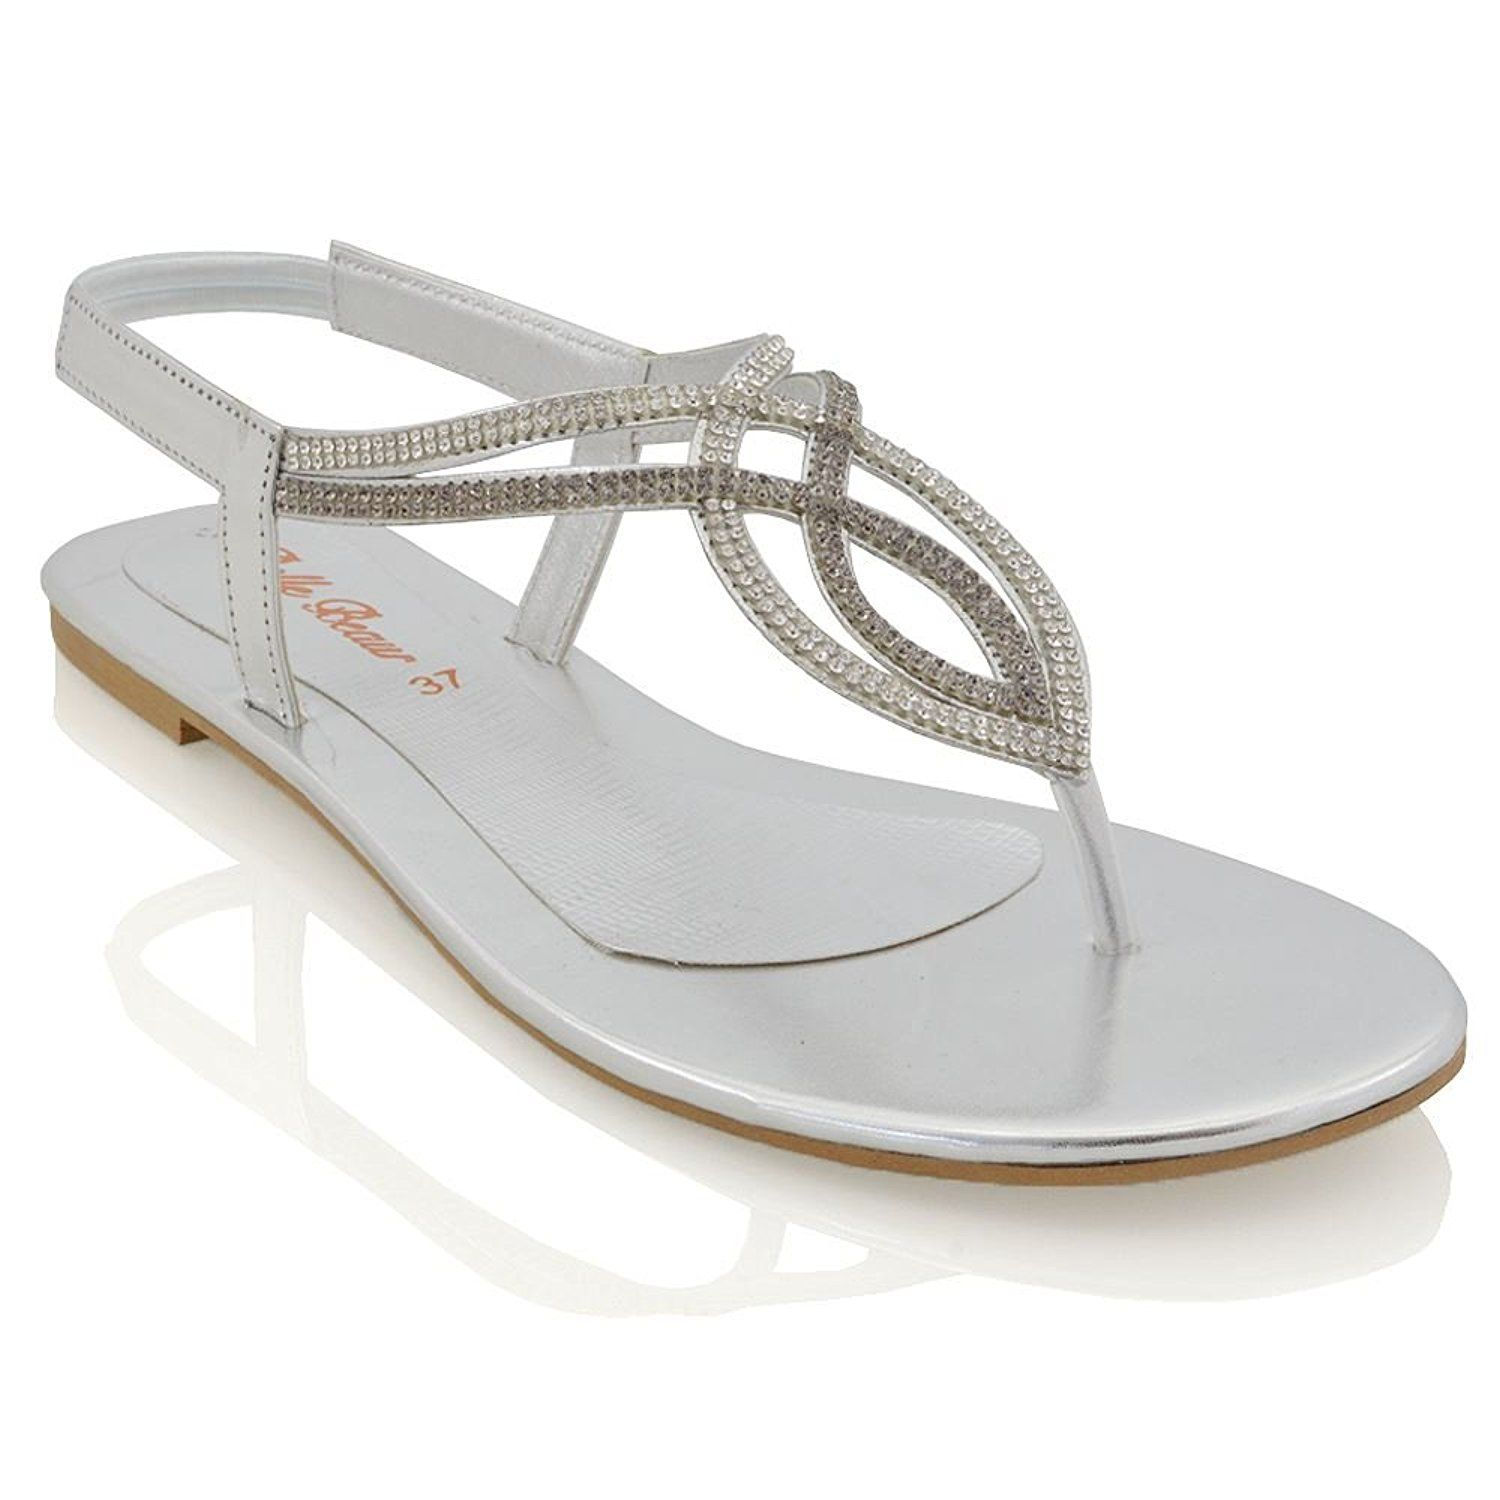 0490ea1af Essex Glam Womens Flat T-Bar Diamante Synthetic Slingback Toepost Sandals      See this great product.  sandals